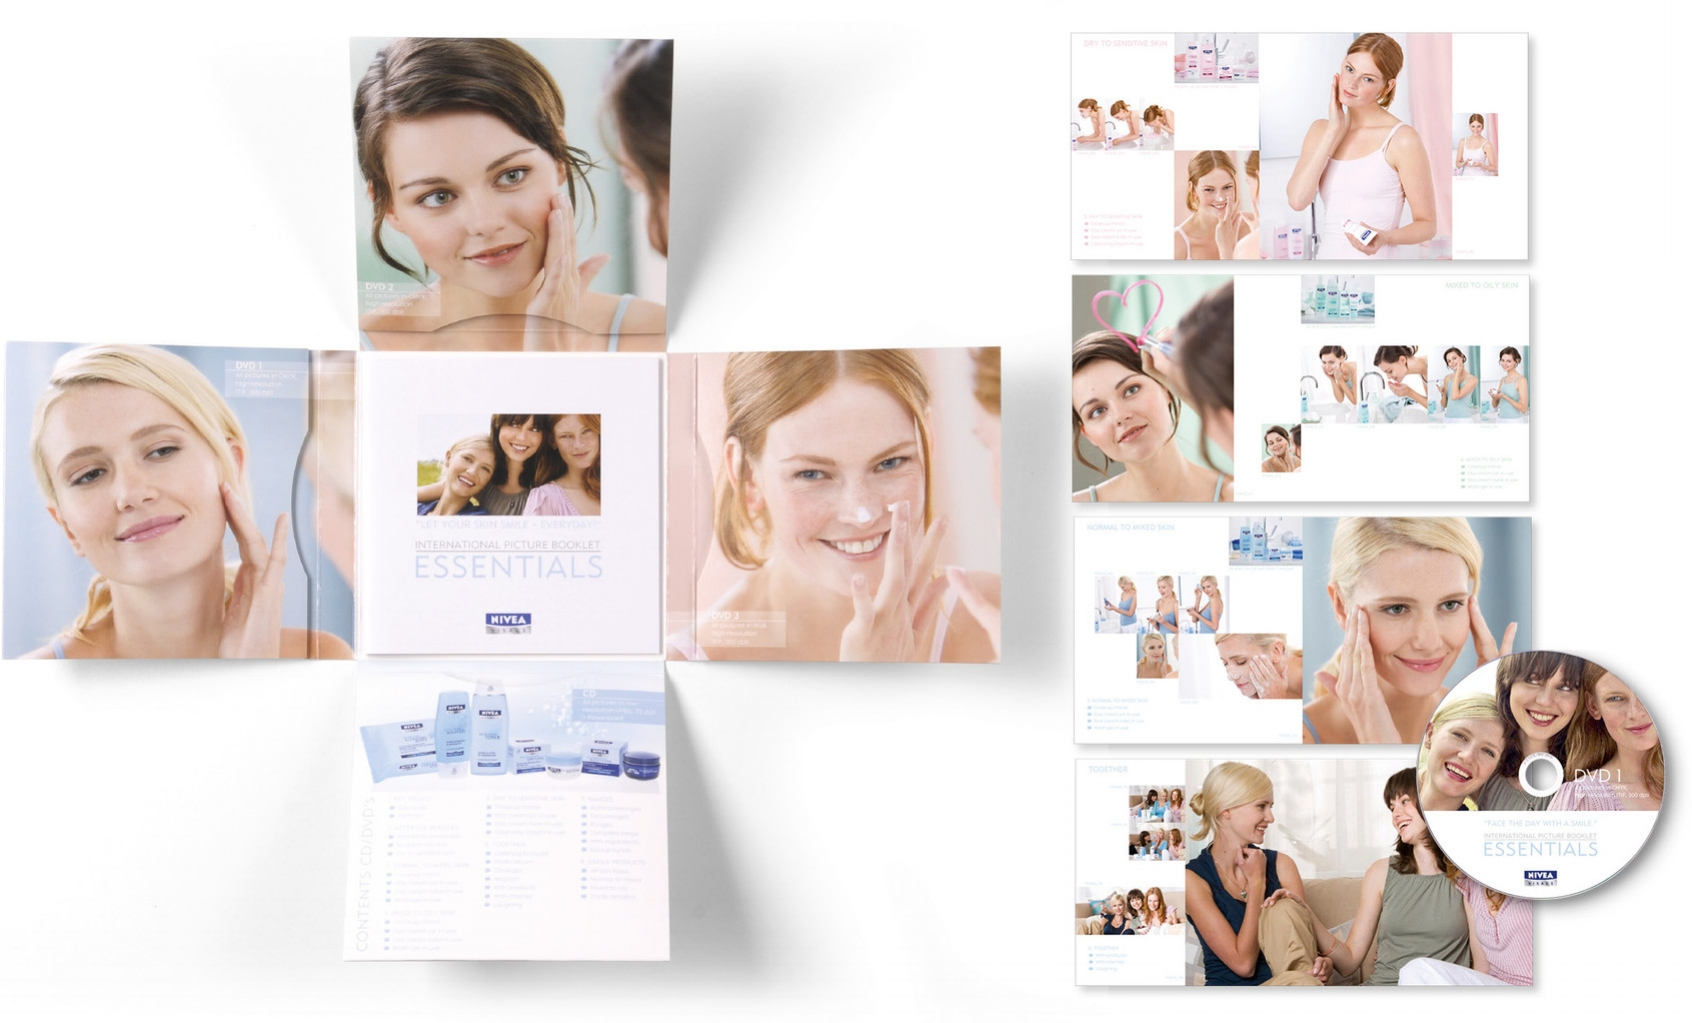 NIVEA · International Picture Catalogue · Konzeption, Art Direction am Set, Gestaltung · Fotograf: Markus Hauser · WINTERPOL